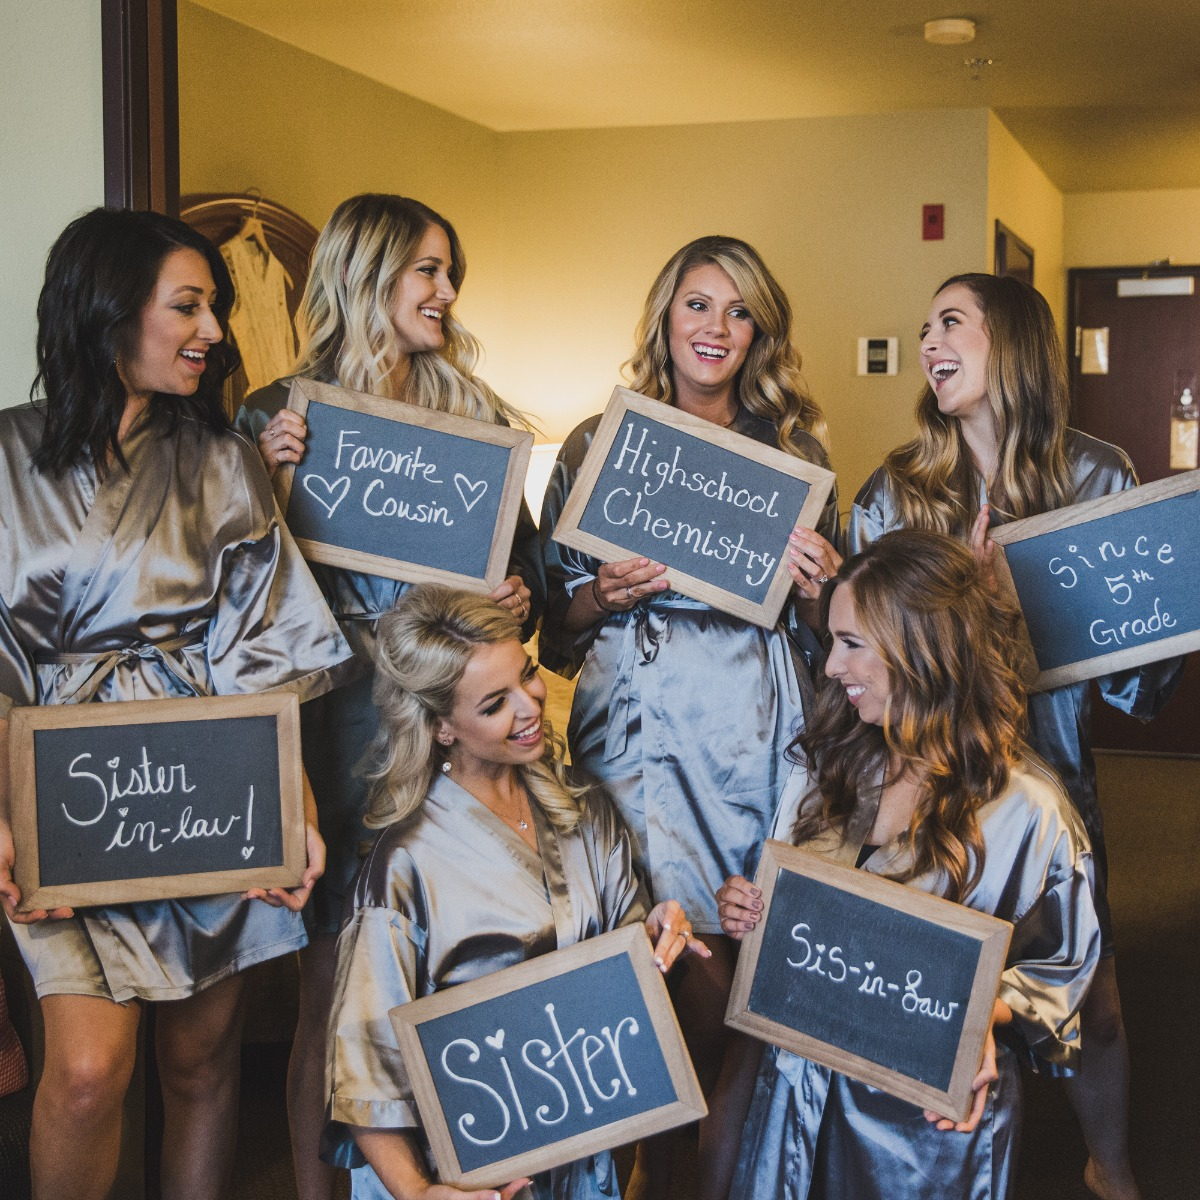 cute bridal party photo idea